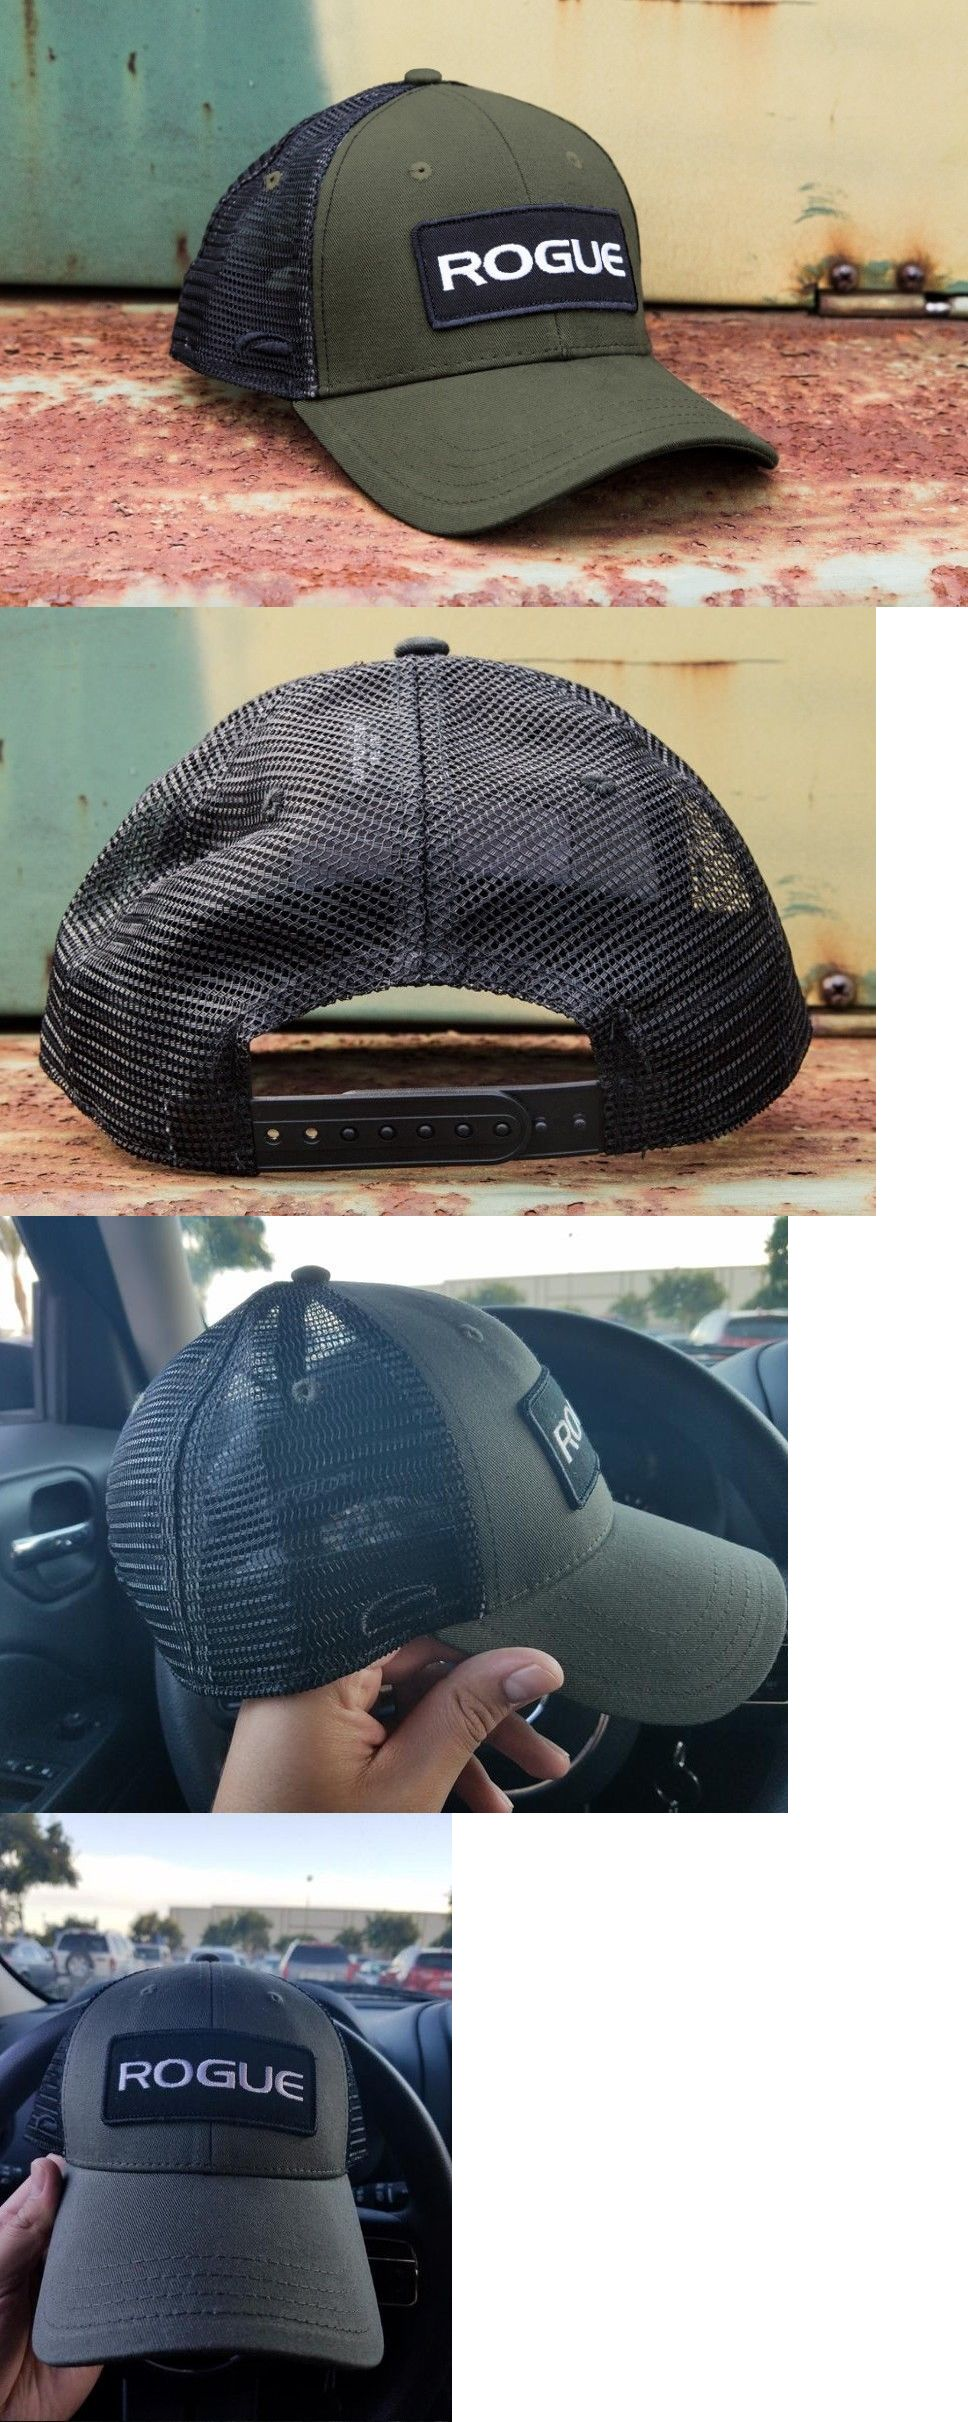 522c6be79dfac Hats and Headwear 158918  New Rogue Fitness Patch Olive Drab And Black  Tactical Trucker Snap Back Mesh Hat BUY IT NOW ONLY   39.95